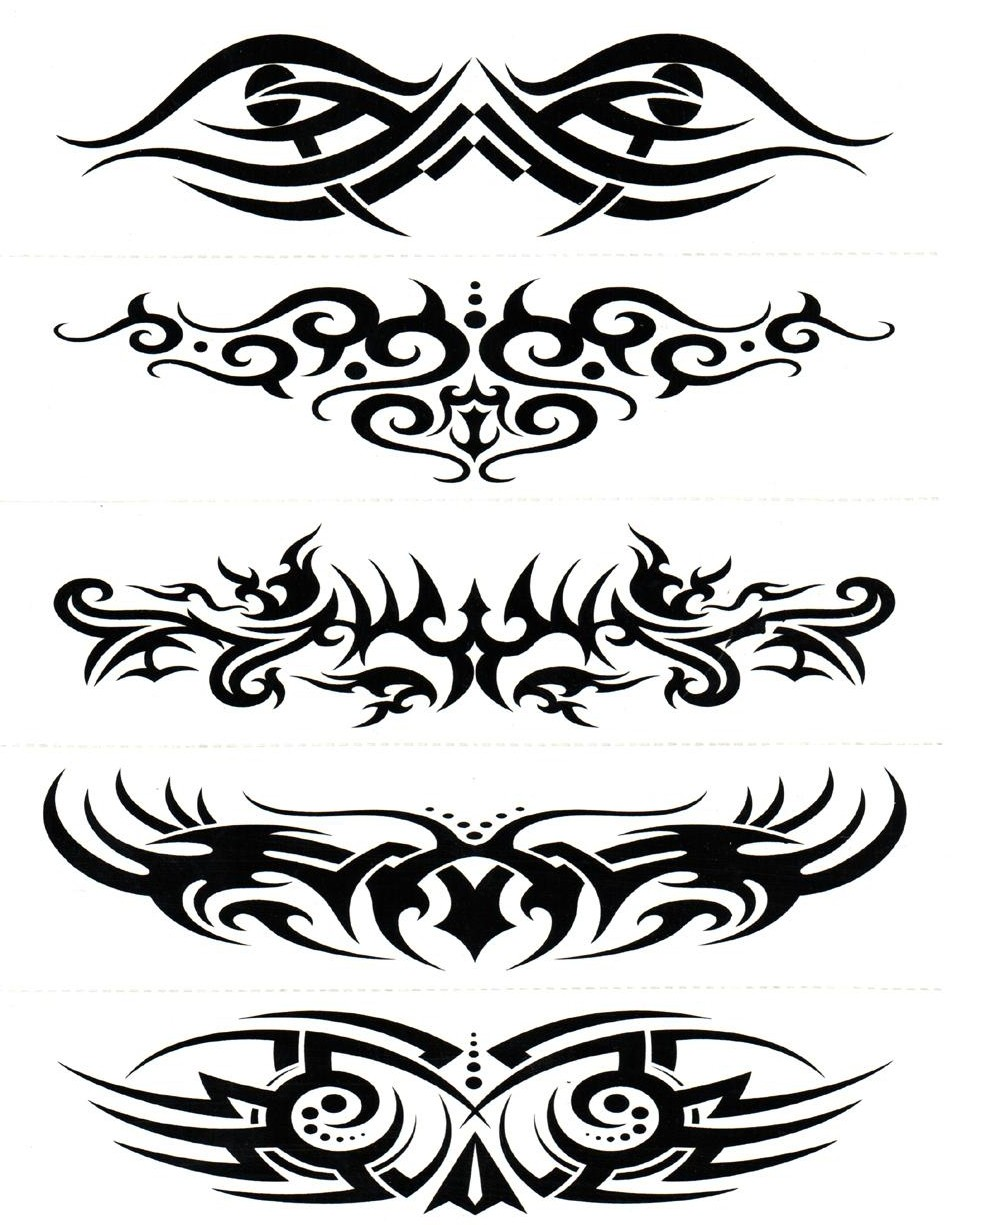 Water Transfer Temporary Tattoos (5 in 1) - 1